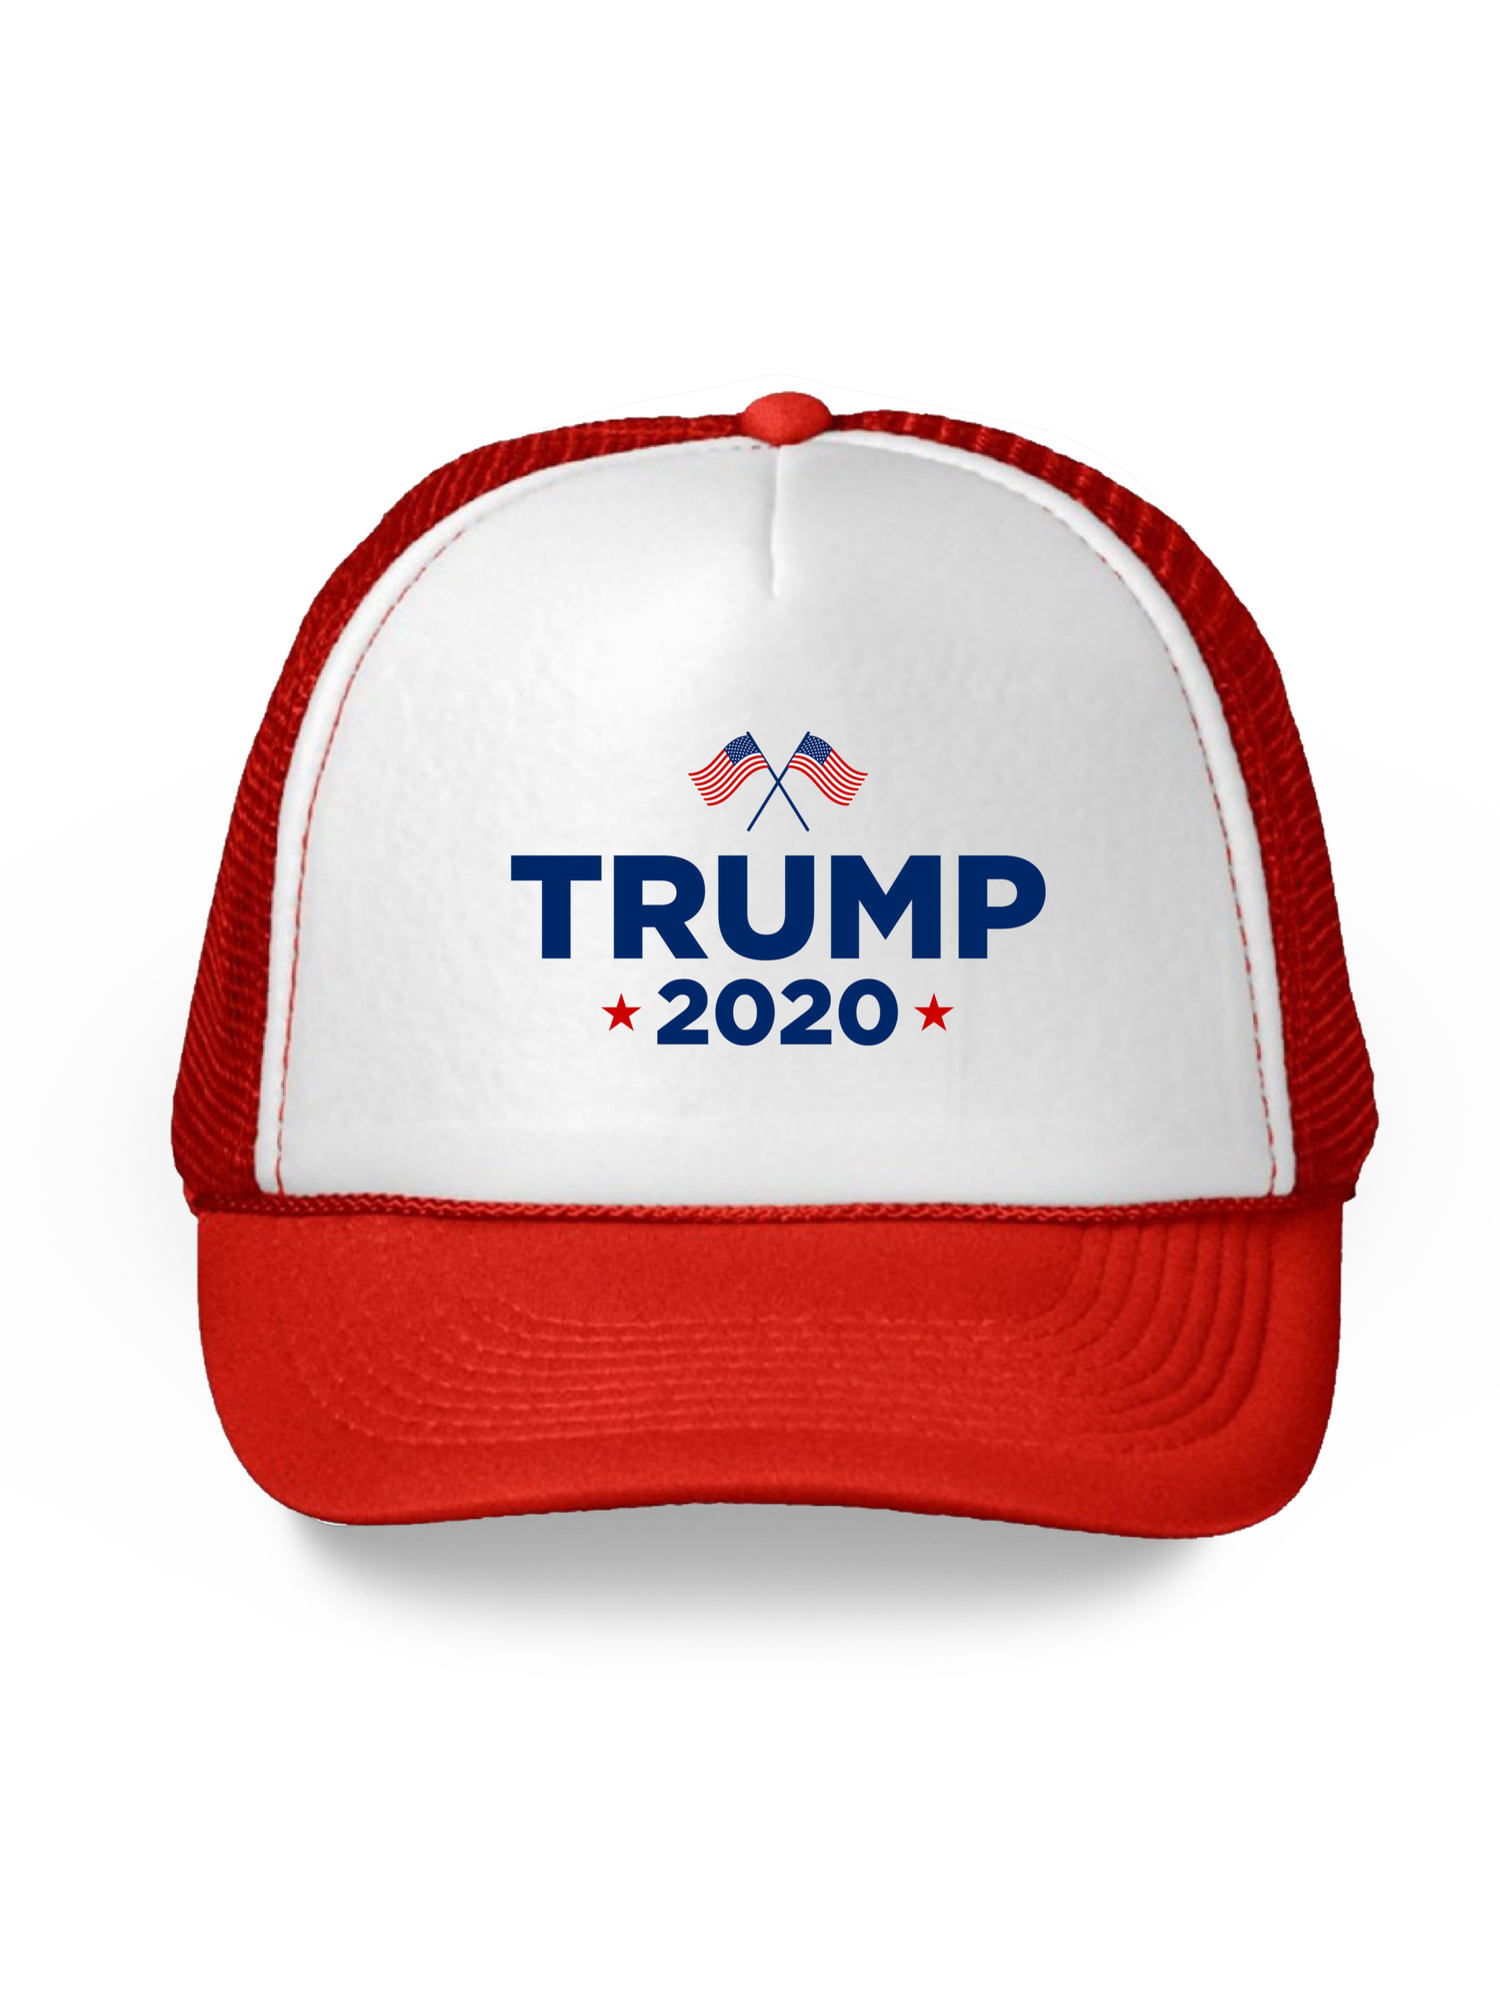 Awkward Styles Trump 2020 Baseball Cap Donald Trump Trucker Hat for Men and  Women Political Gifts Republican Campaign Caps Keep America Great Election  2020 ... bcdf0f2c3cb